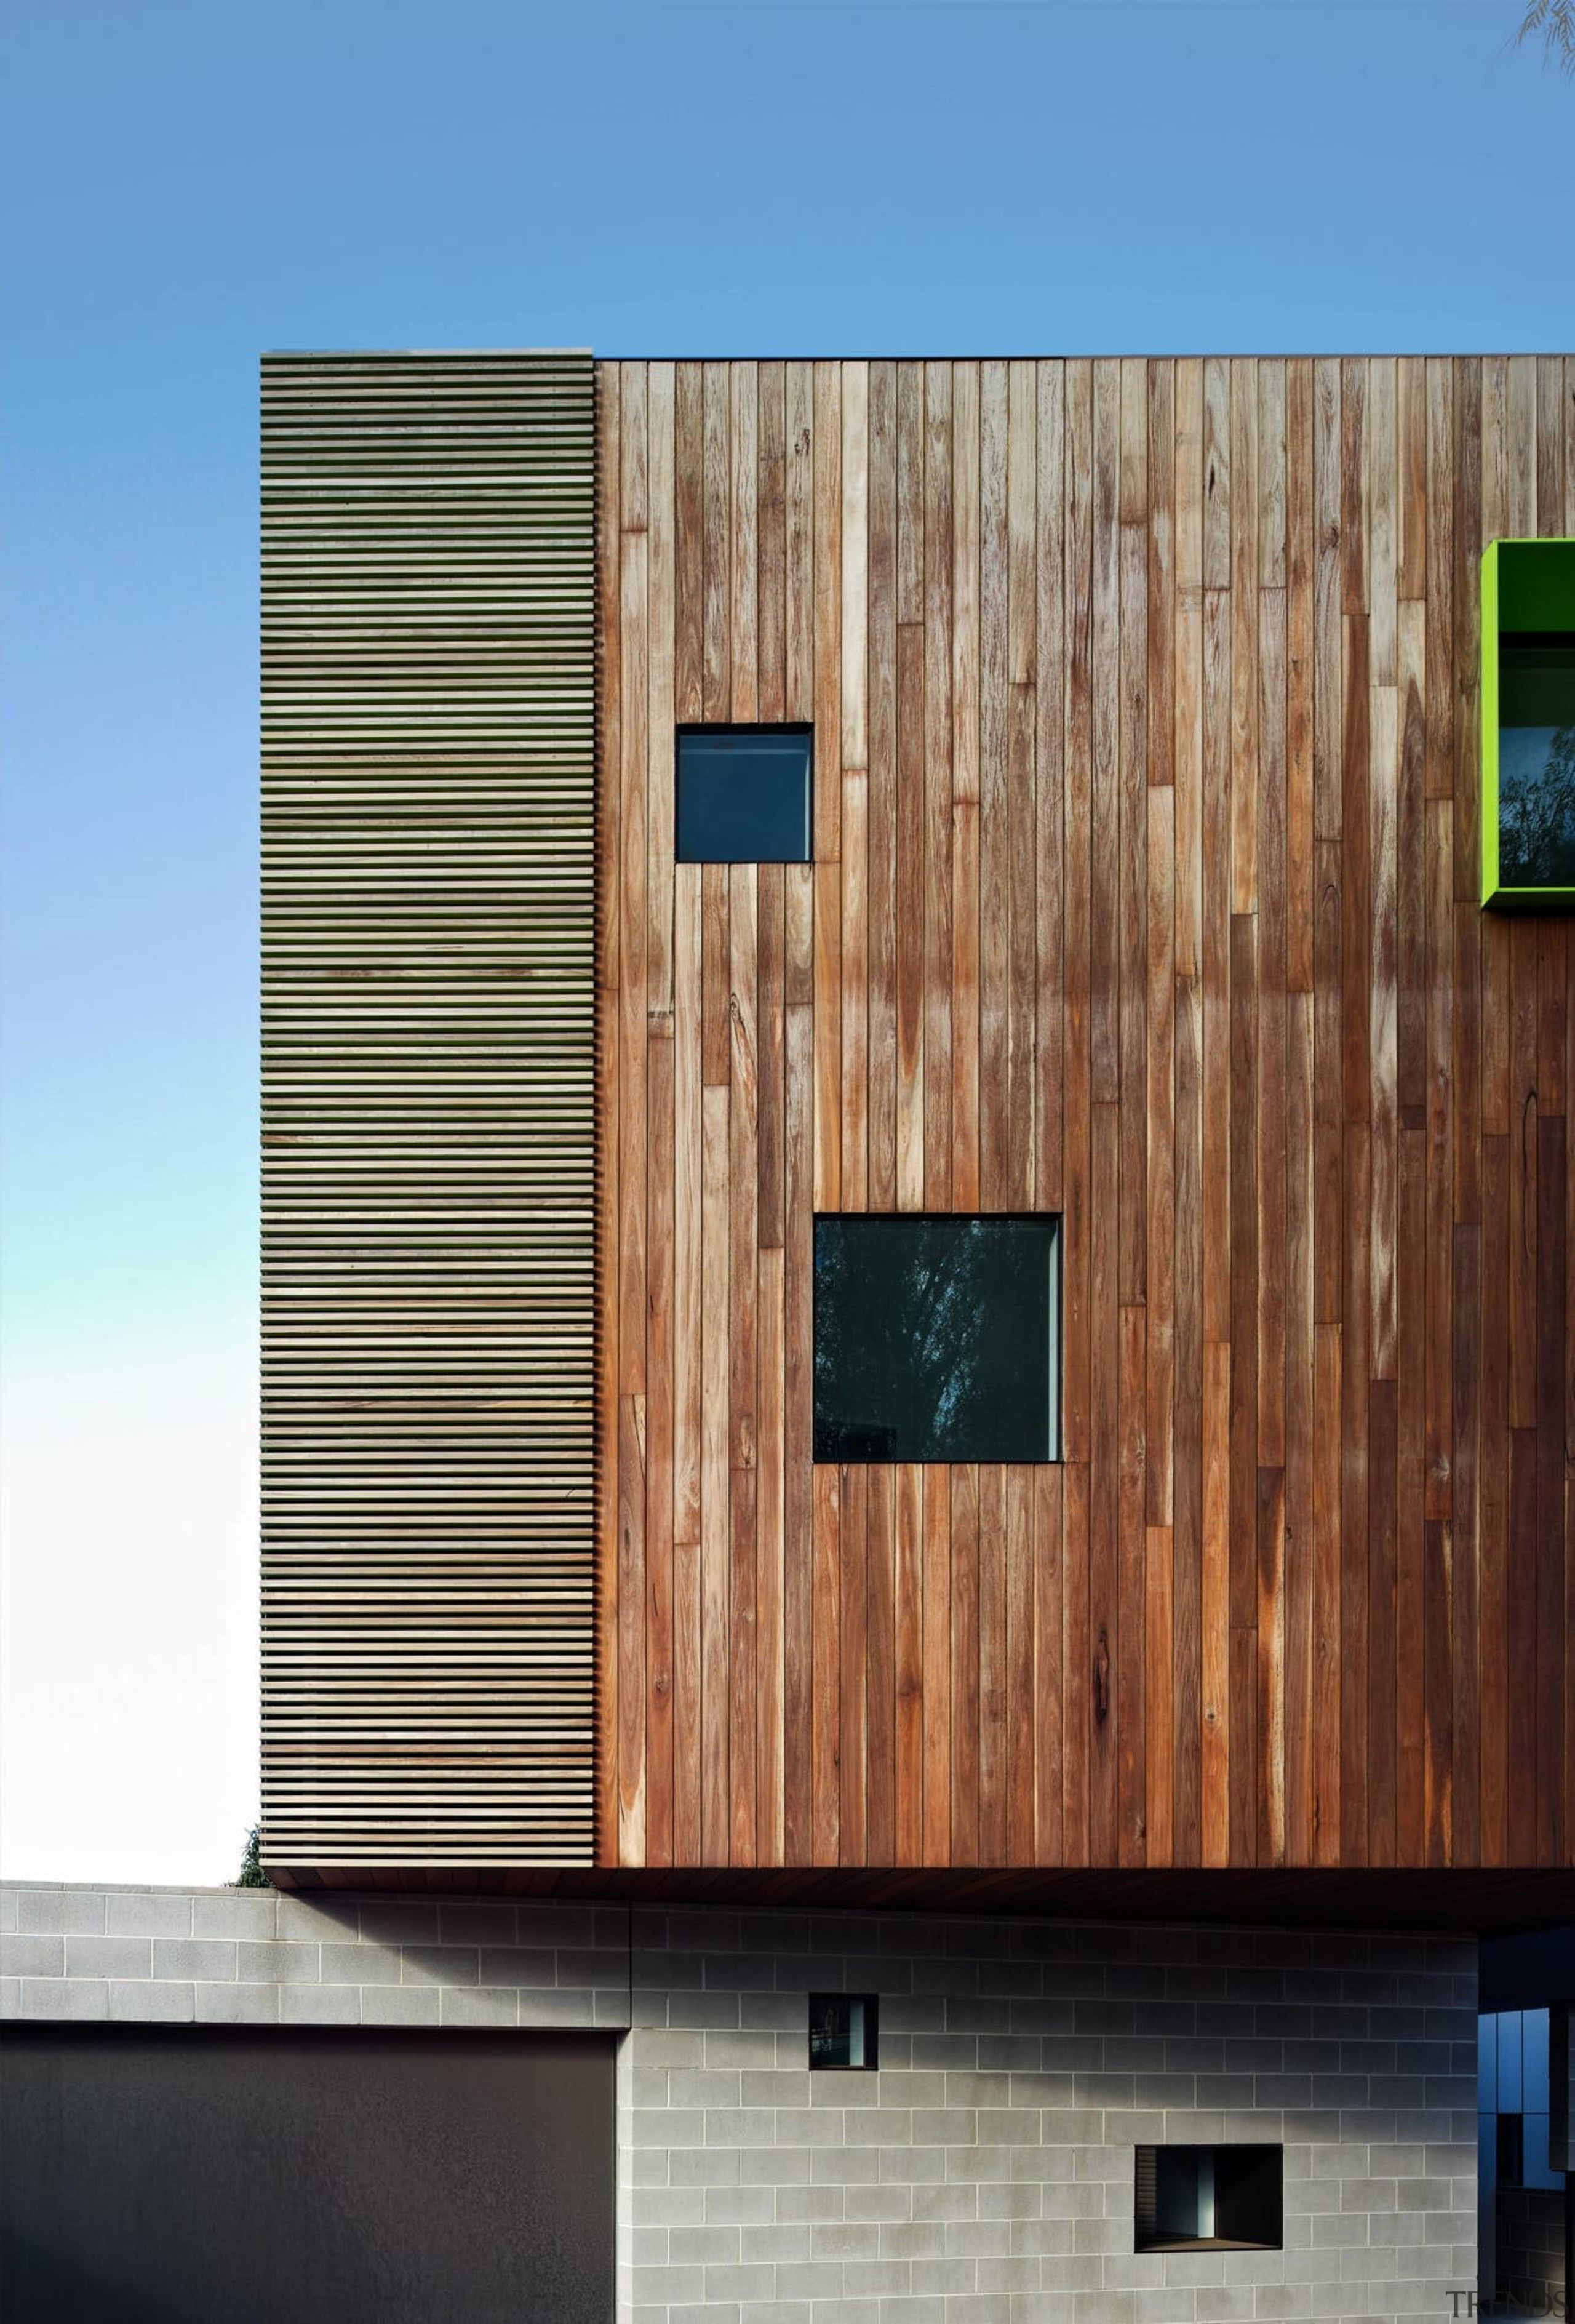 Interspaced windows break up the wood facade - architecture, building, facade, home, house, siding, wall, wood, wood stain